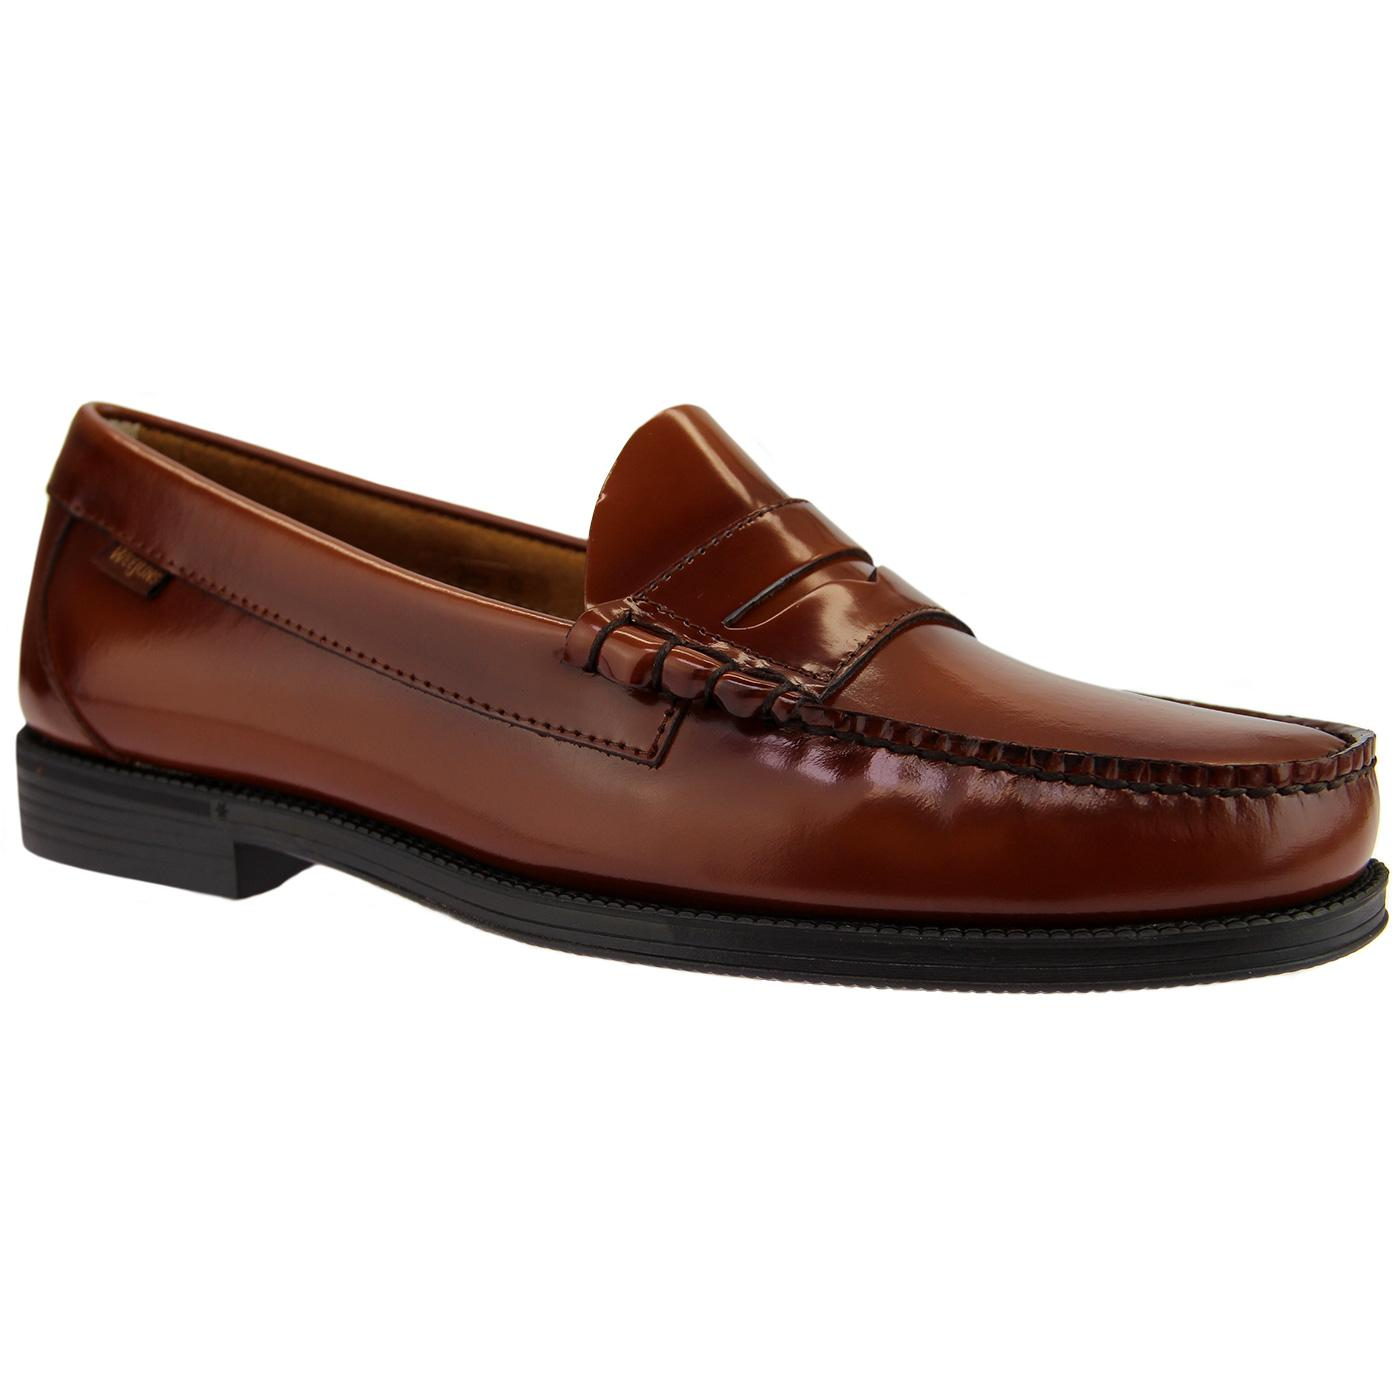 Bass Weejun Ease: Larson Penny Loafer in Tan